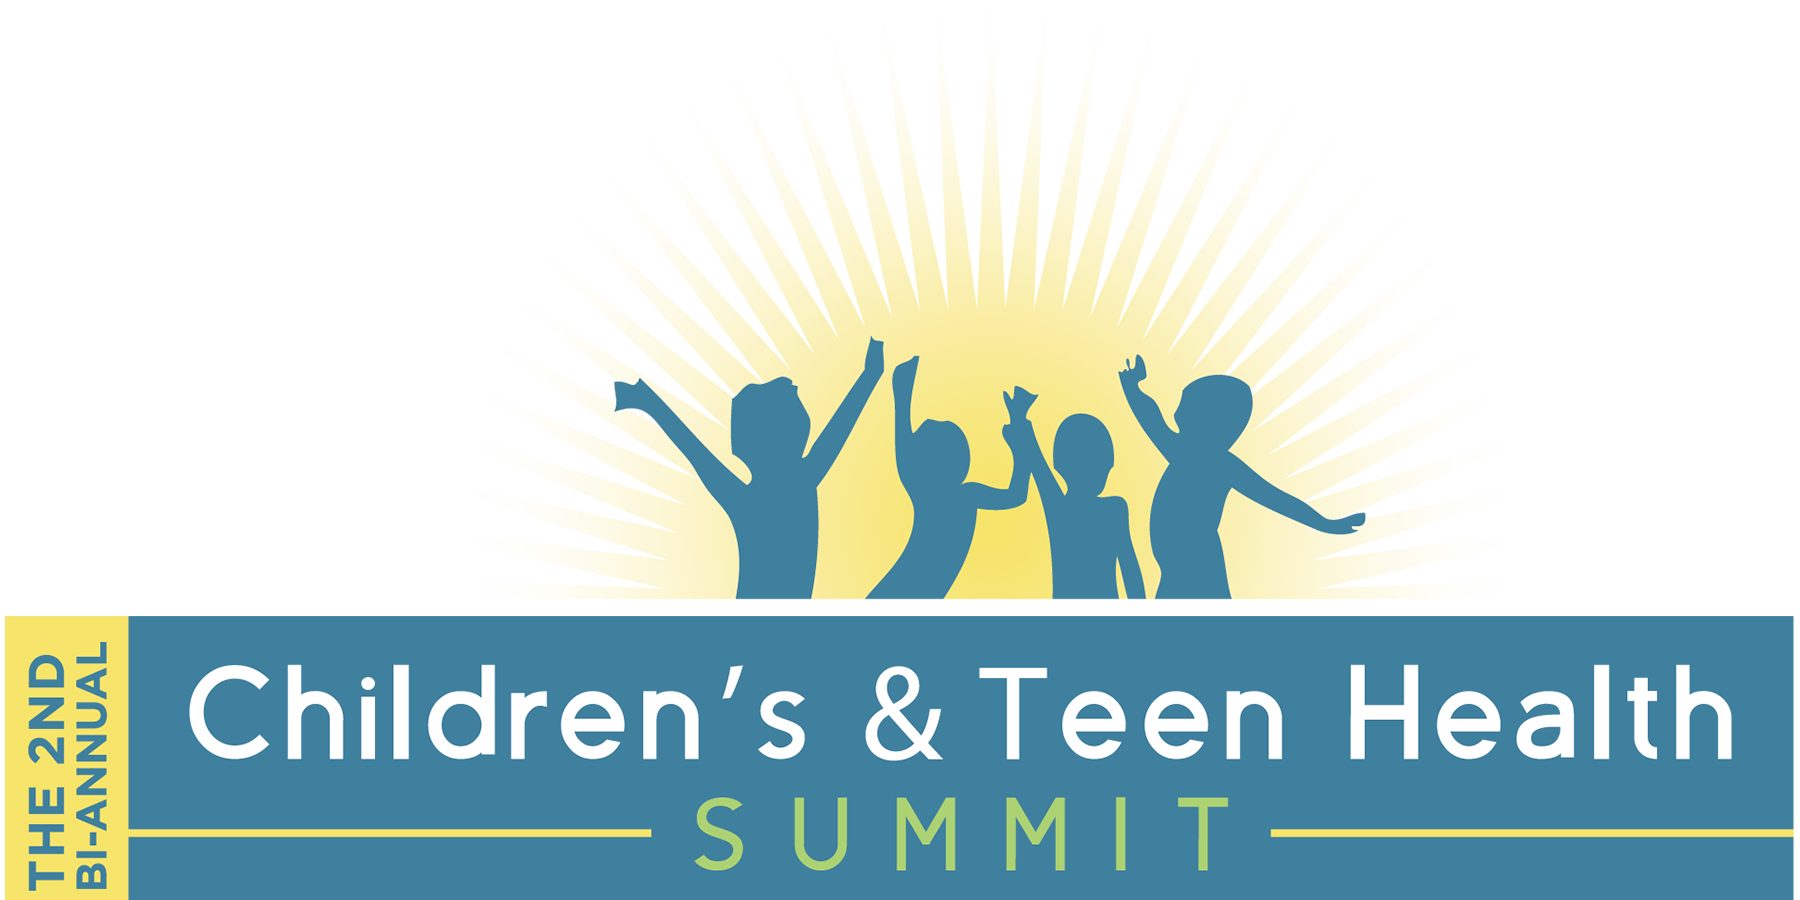 Children's & Teen Health Summit